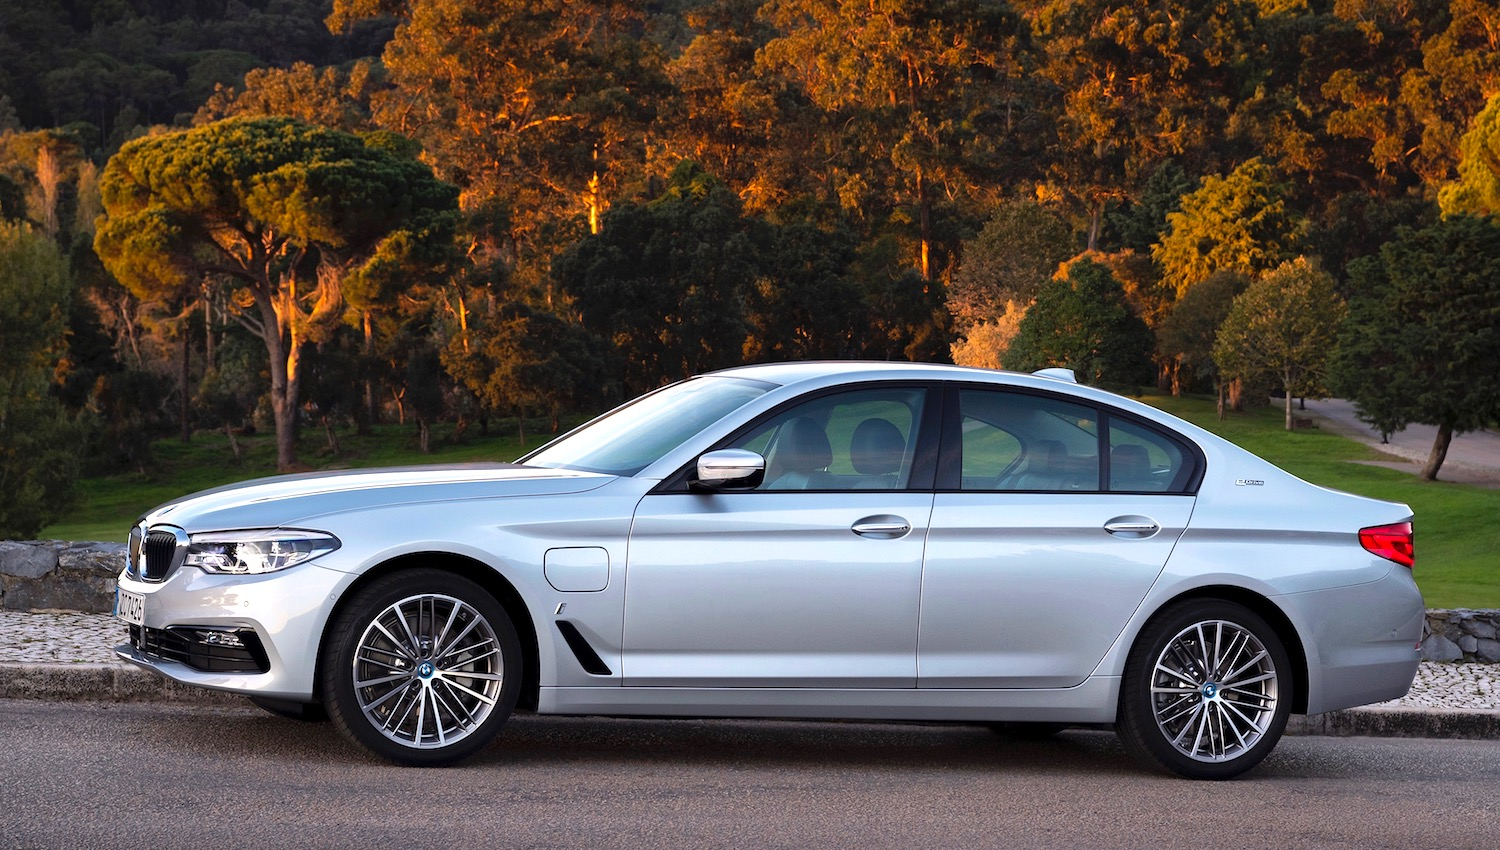 Bmw Salon Bmw 530e Iperformance Saloon Greencarguide Co Uk